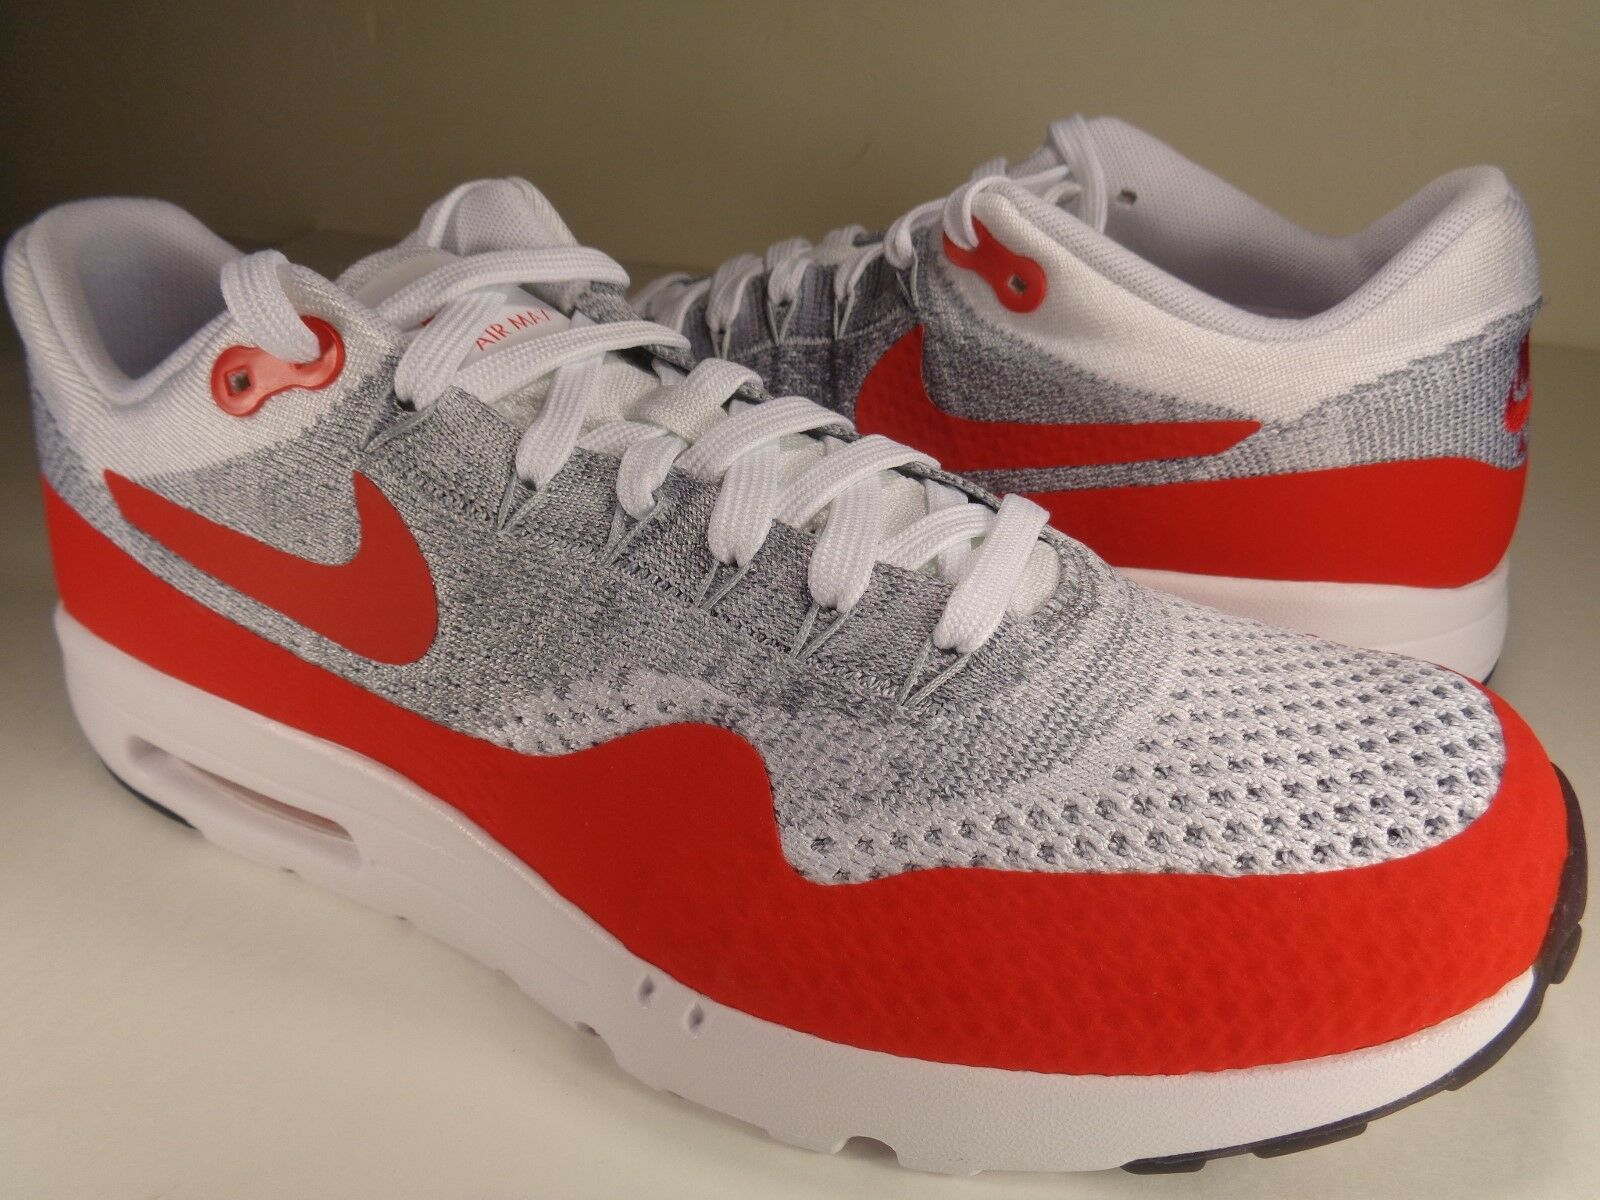 Nike air max 1 ultra flyknit grey university (843384-101) red white sz 8,5 (843384-101) university 8f6ba3